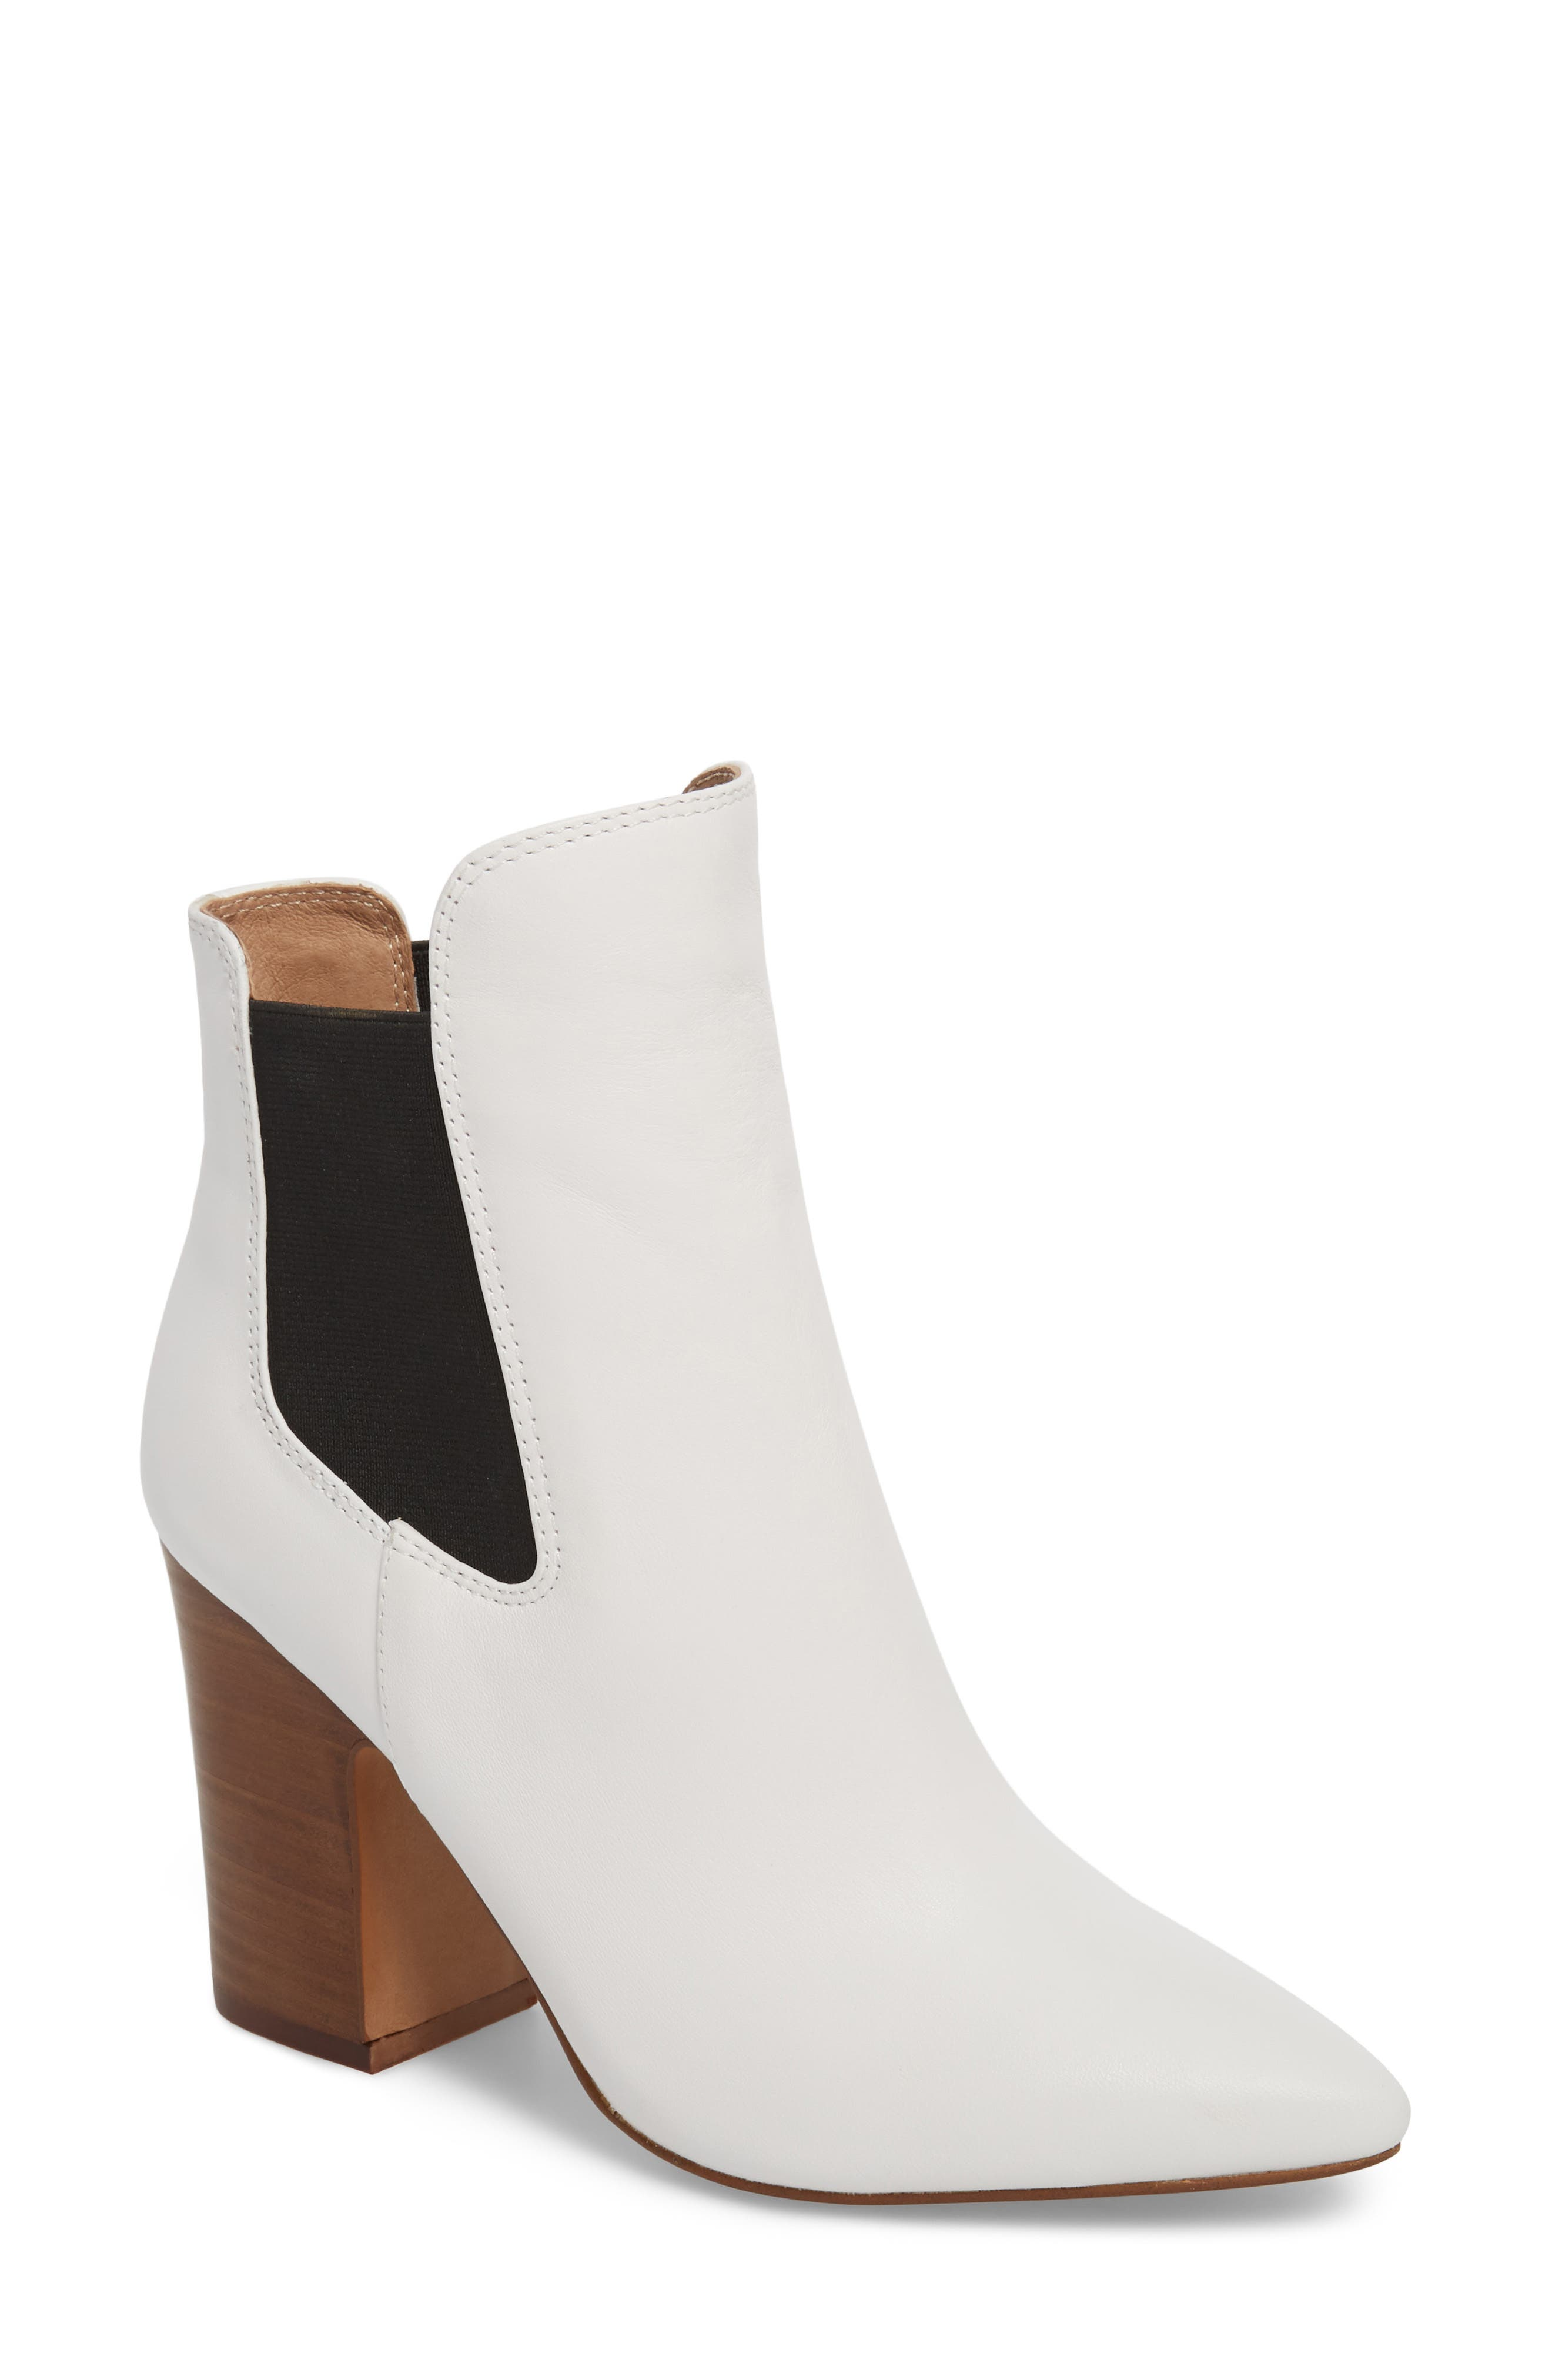 Starlight Bootie,                             Main thumbnail 1, color,                             WHITE LEATHER